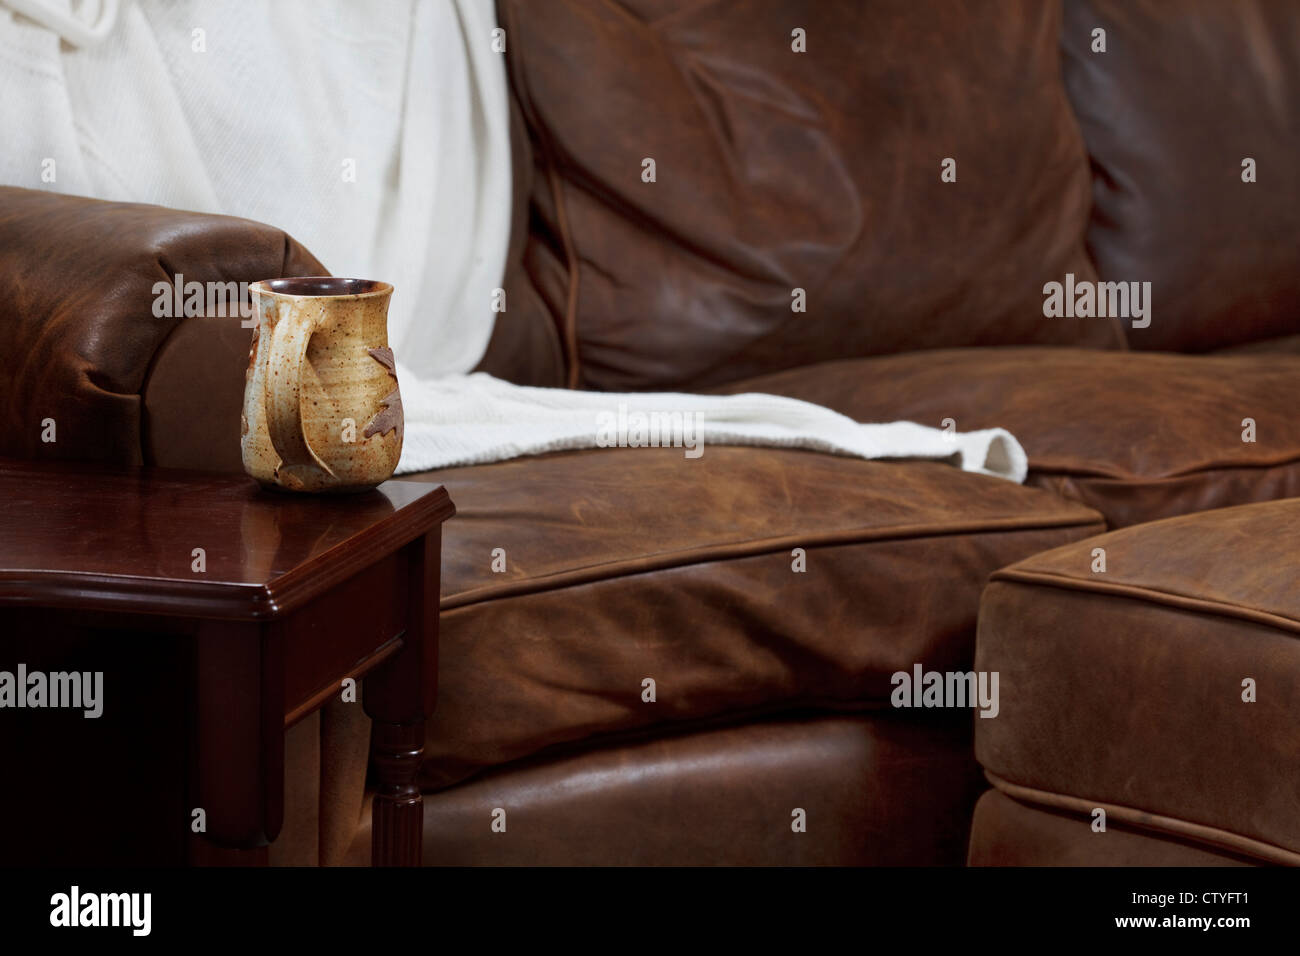 Mug of something hot and a comfy sofa to relax in - Stock Image